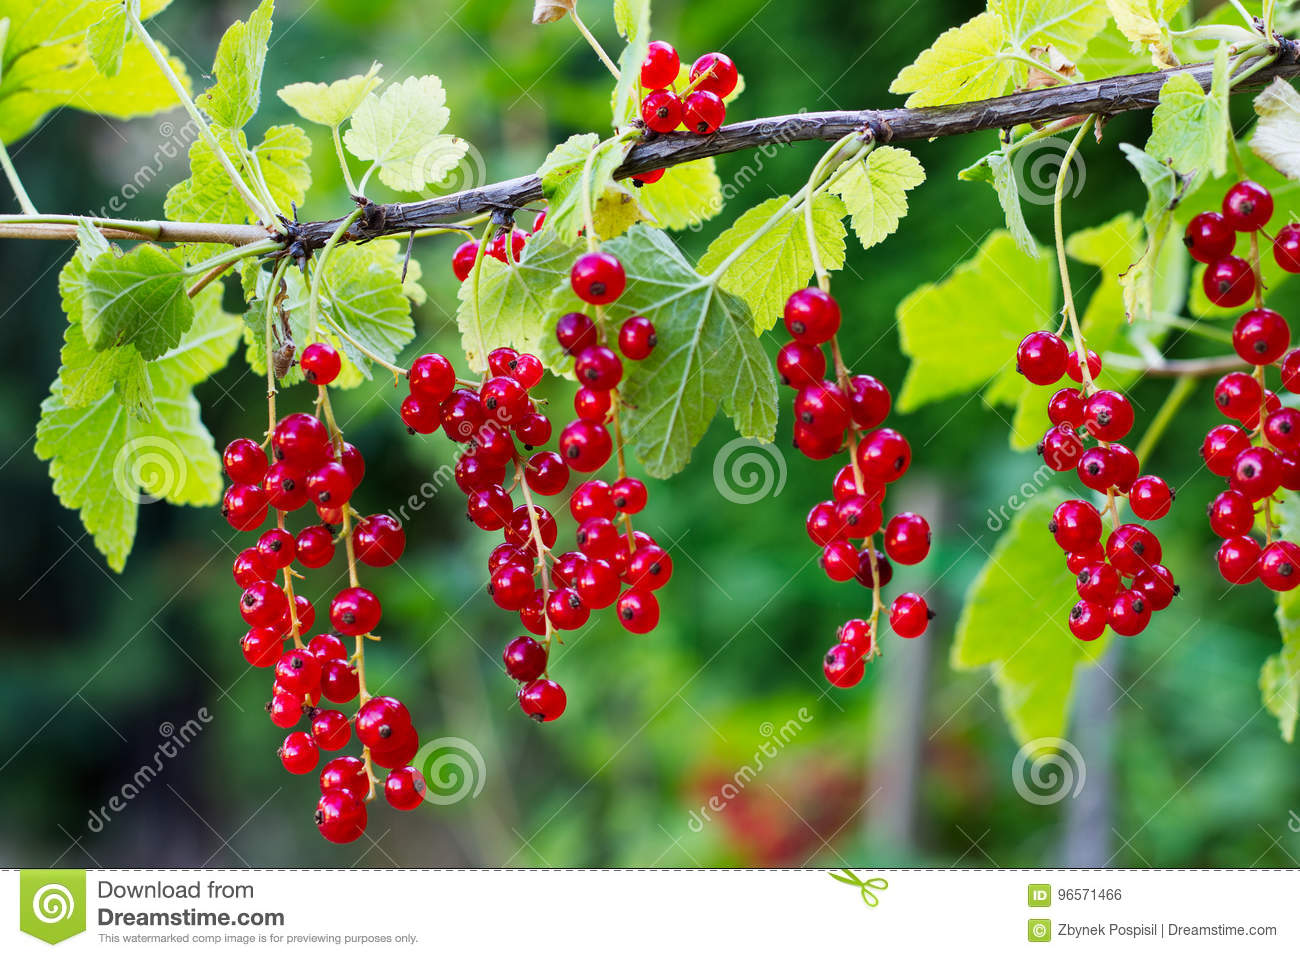 Why does the currant dream